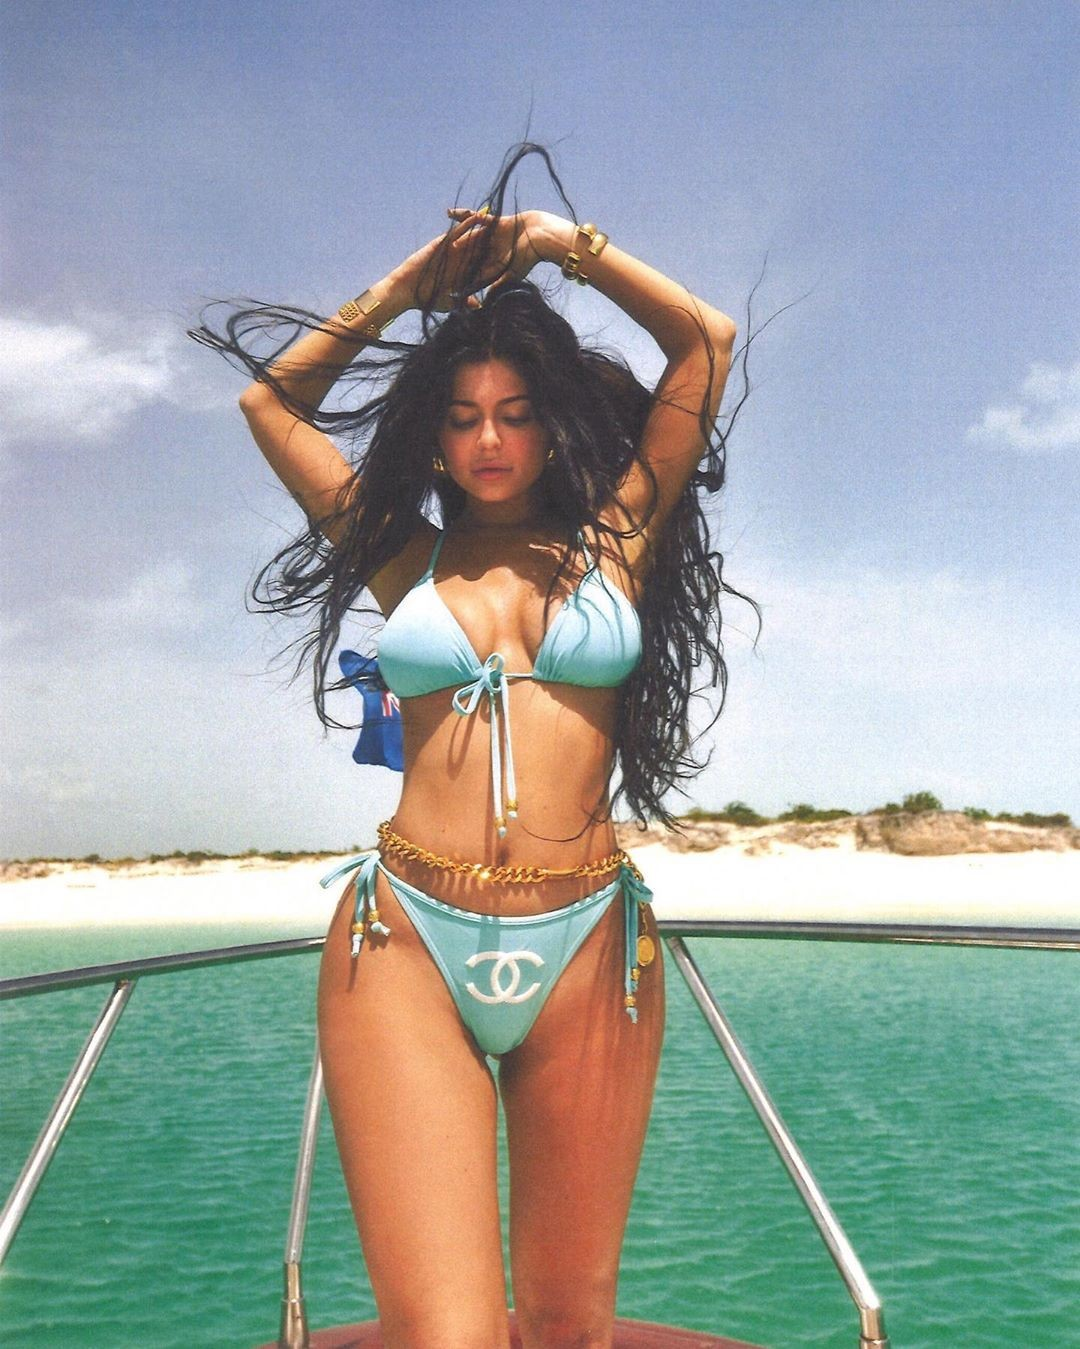 Of Course Kylie Jenner's Chanel Bikini Was On Naomi Campbell First